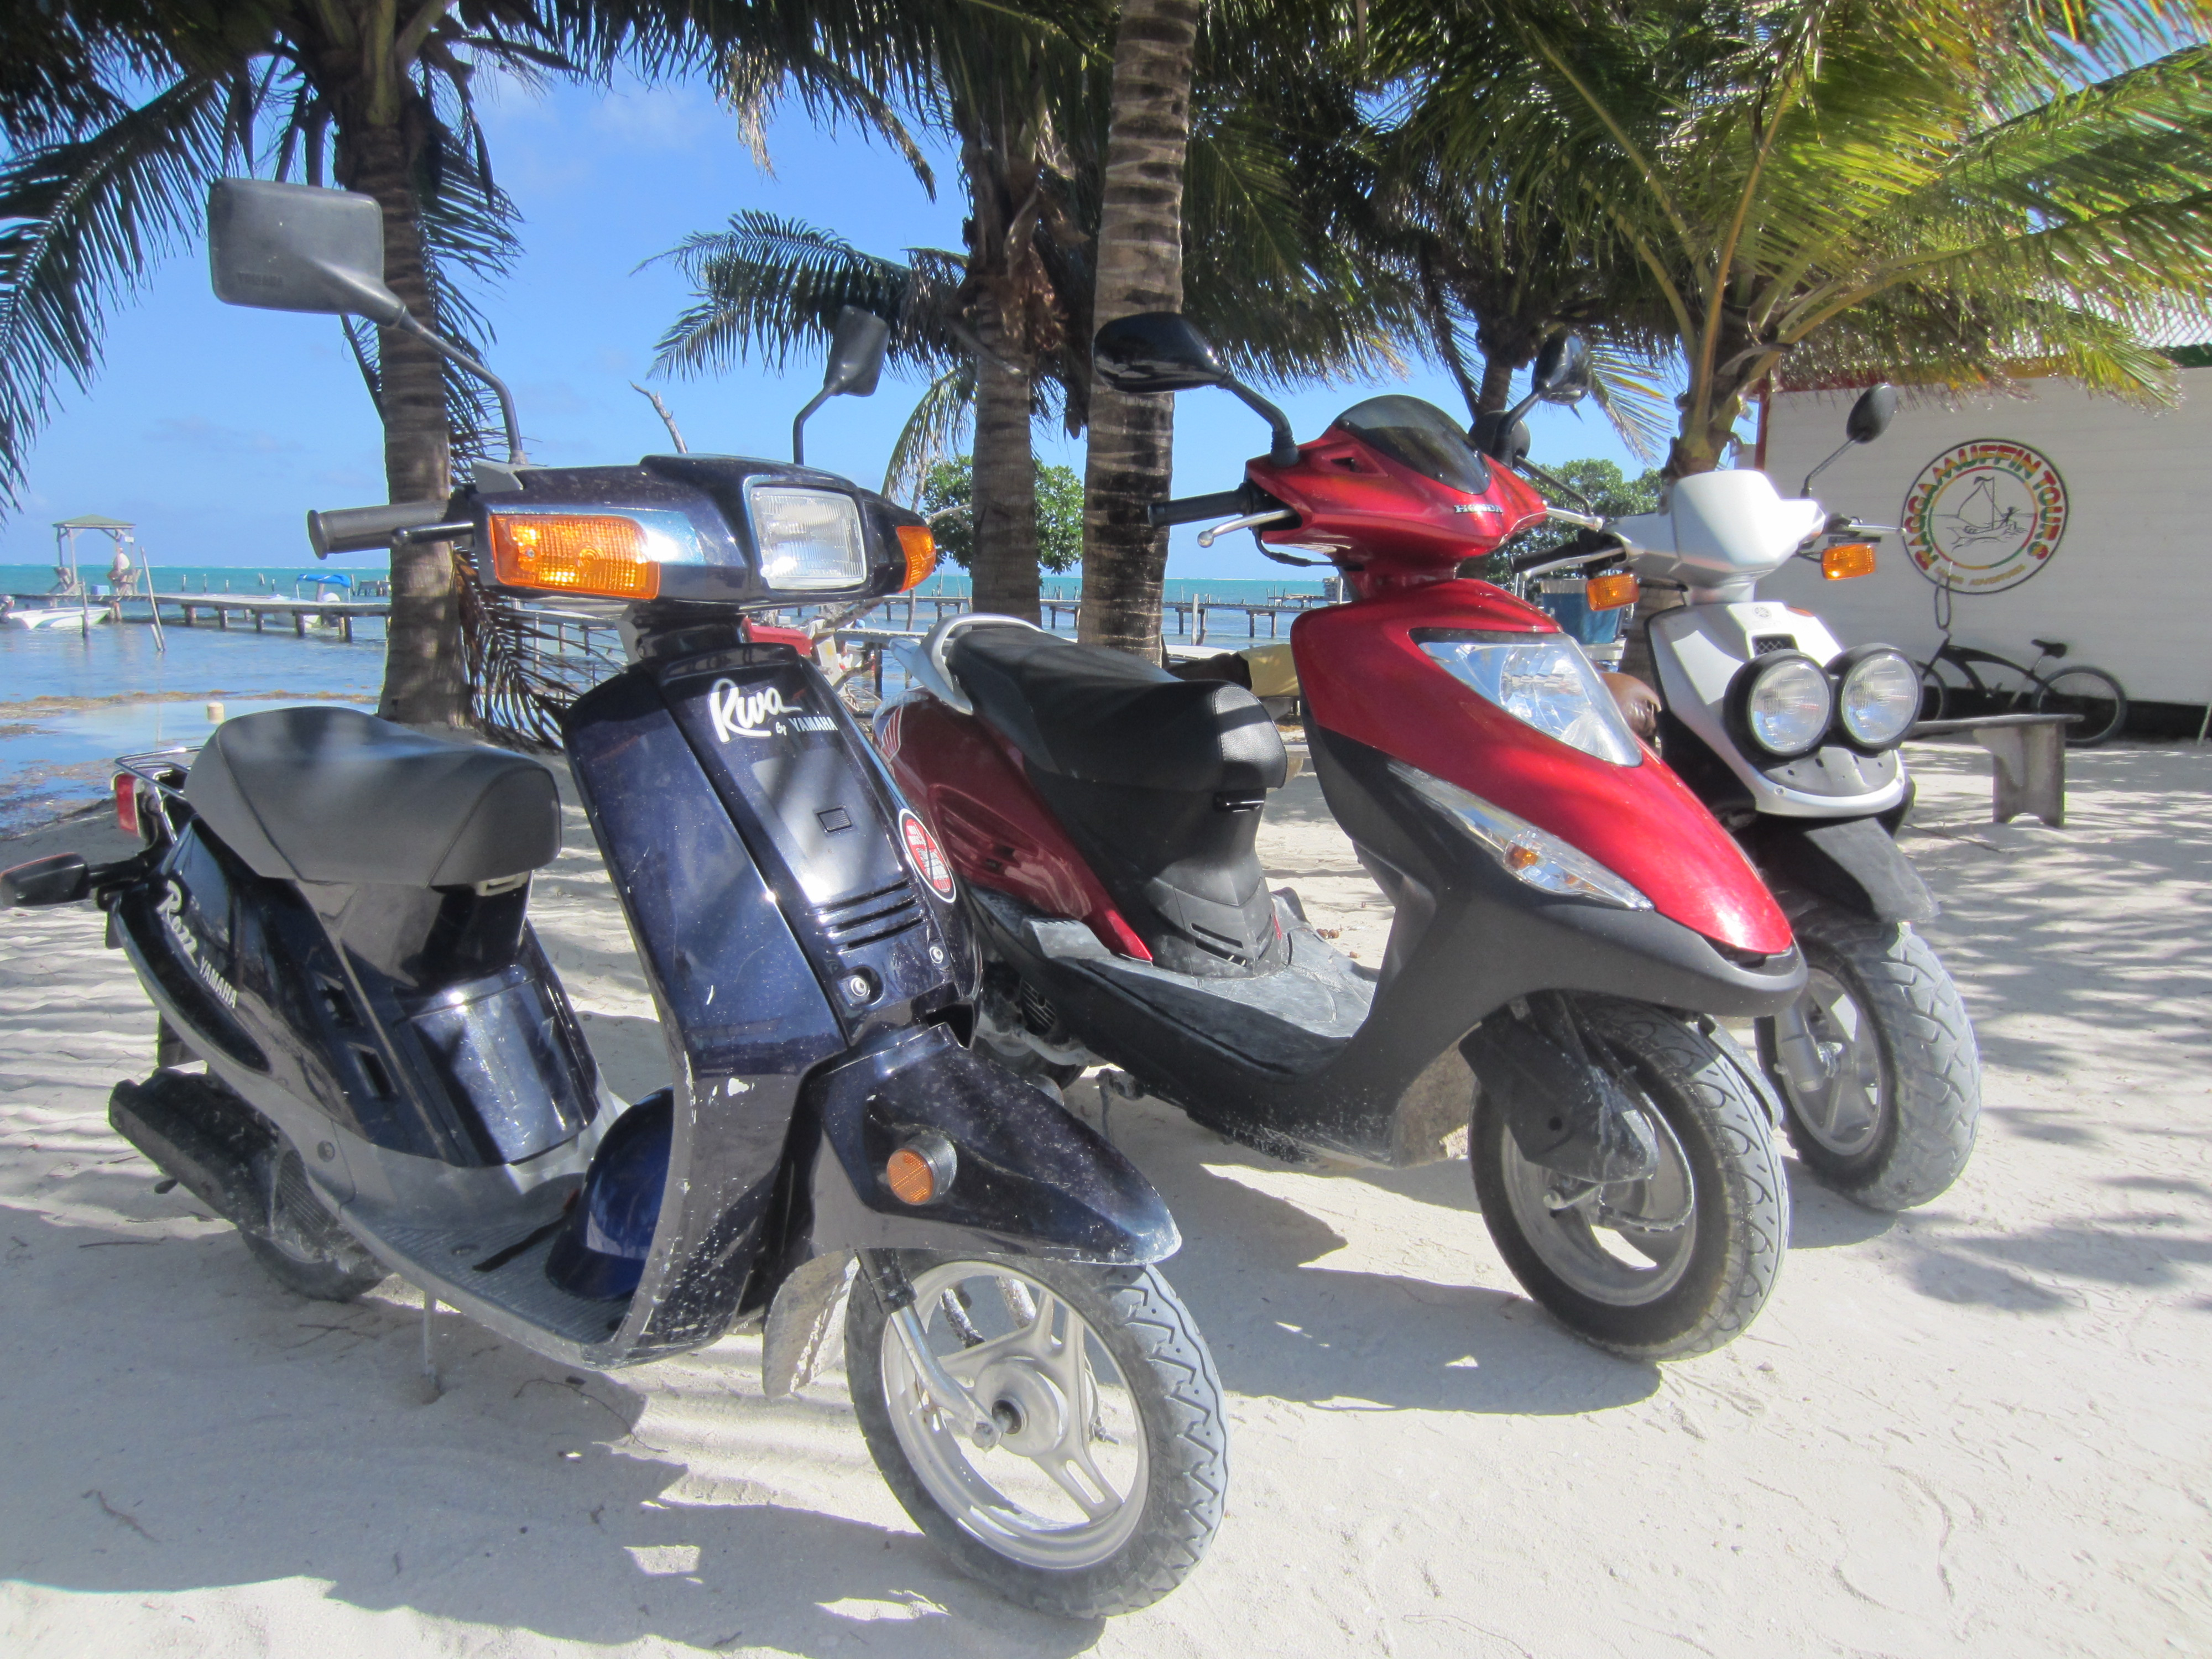 Scooters that are NOT for rent!